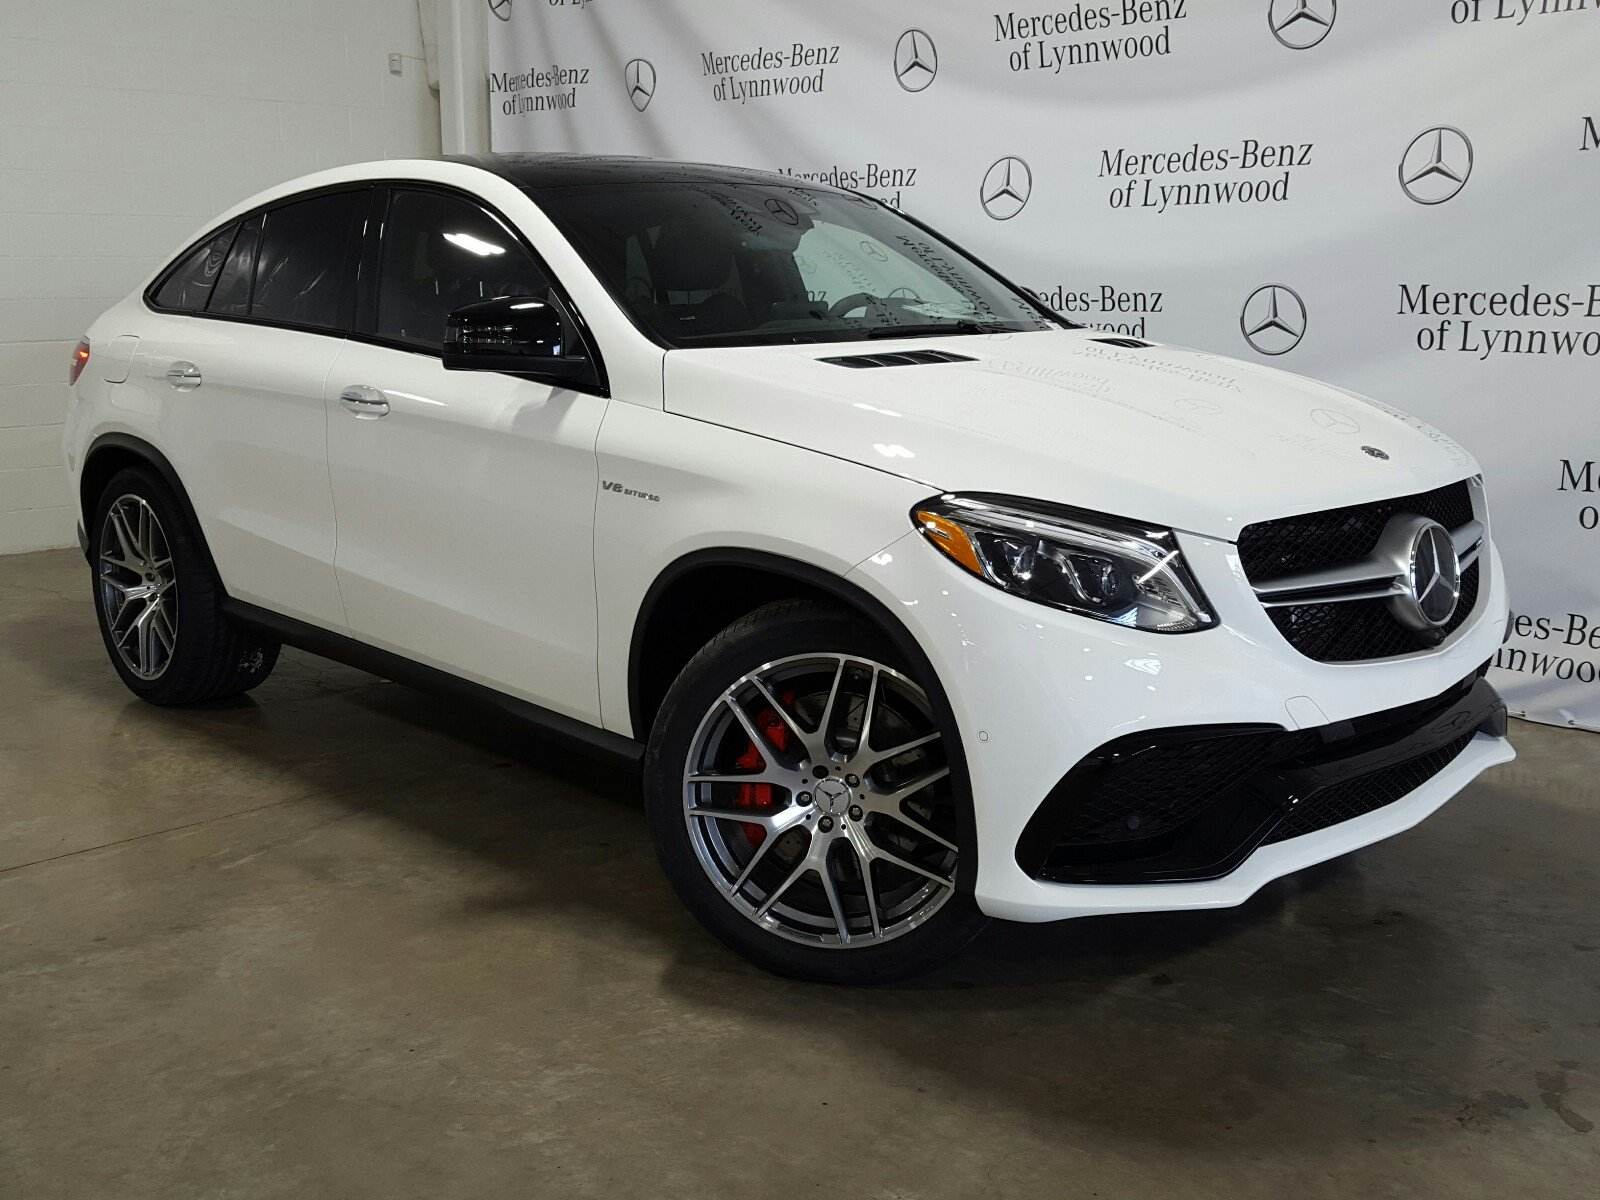 New 2019 Mercedes Benz GLE AMG GLE 63 S 4MATIC Coupe